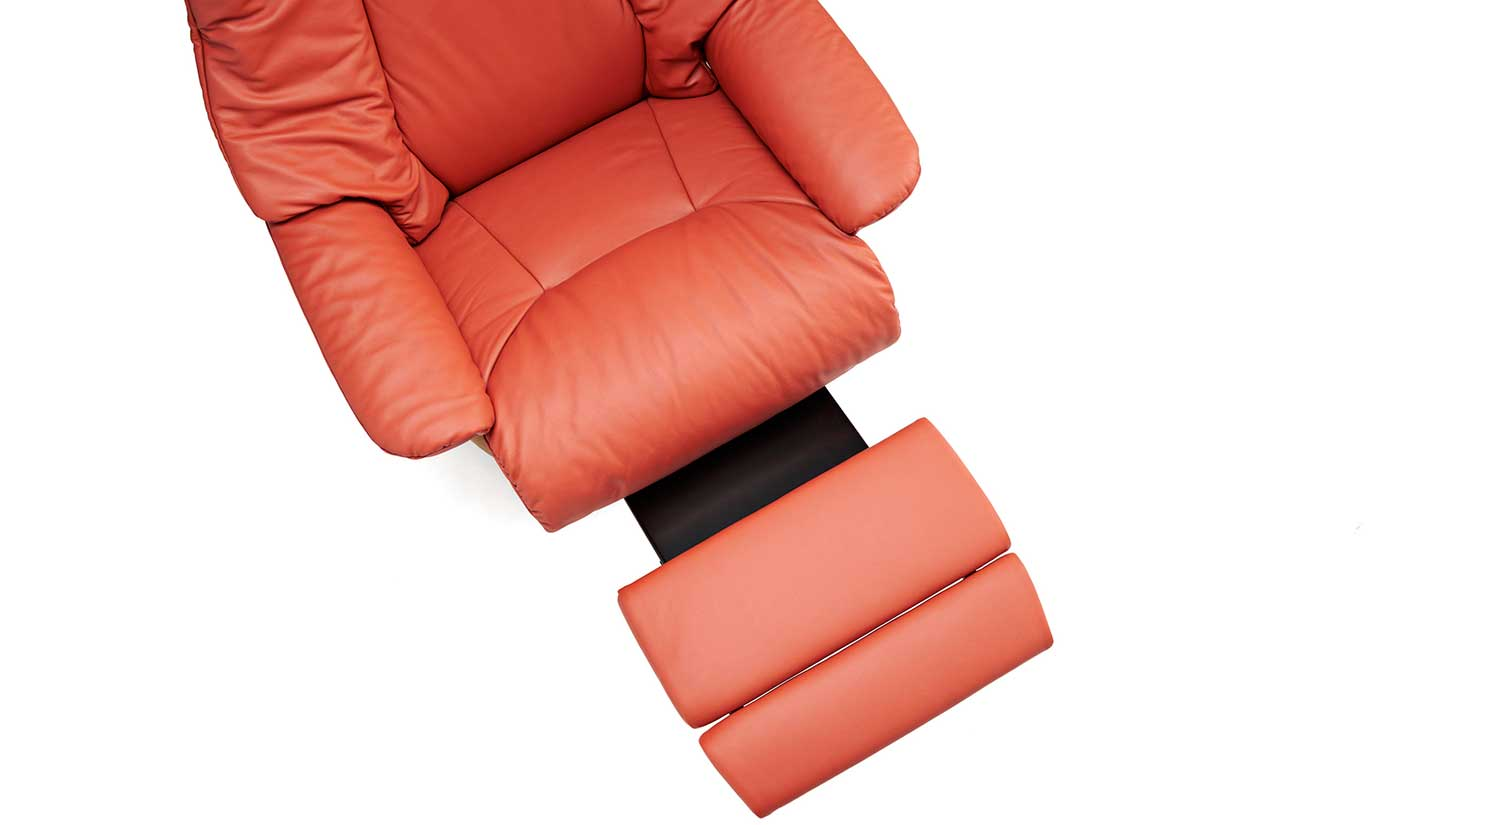 Live Stressless Recliner with Leg Comfort